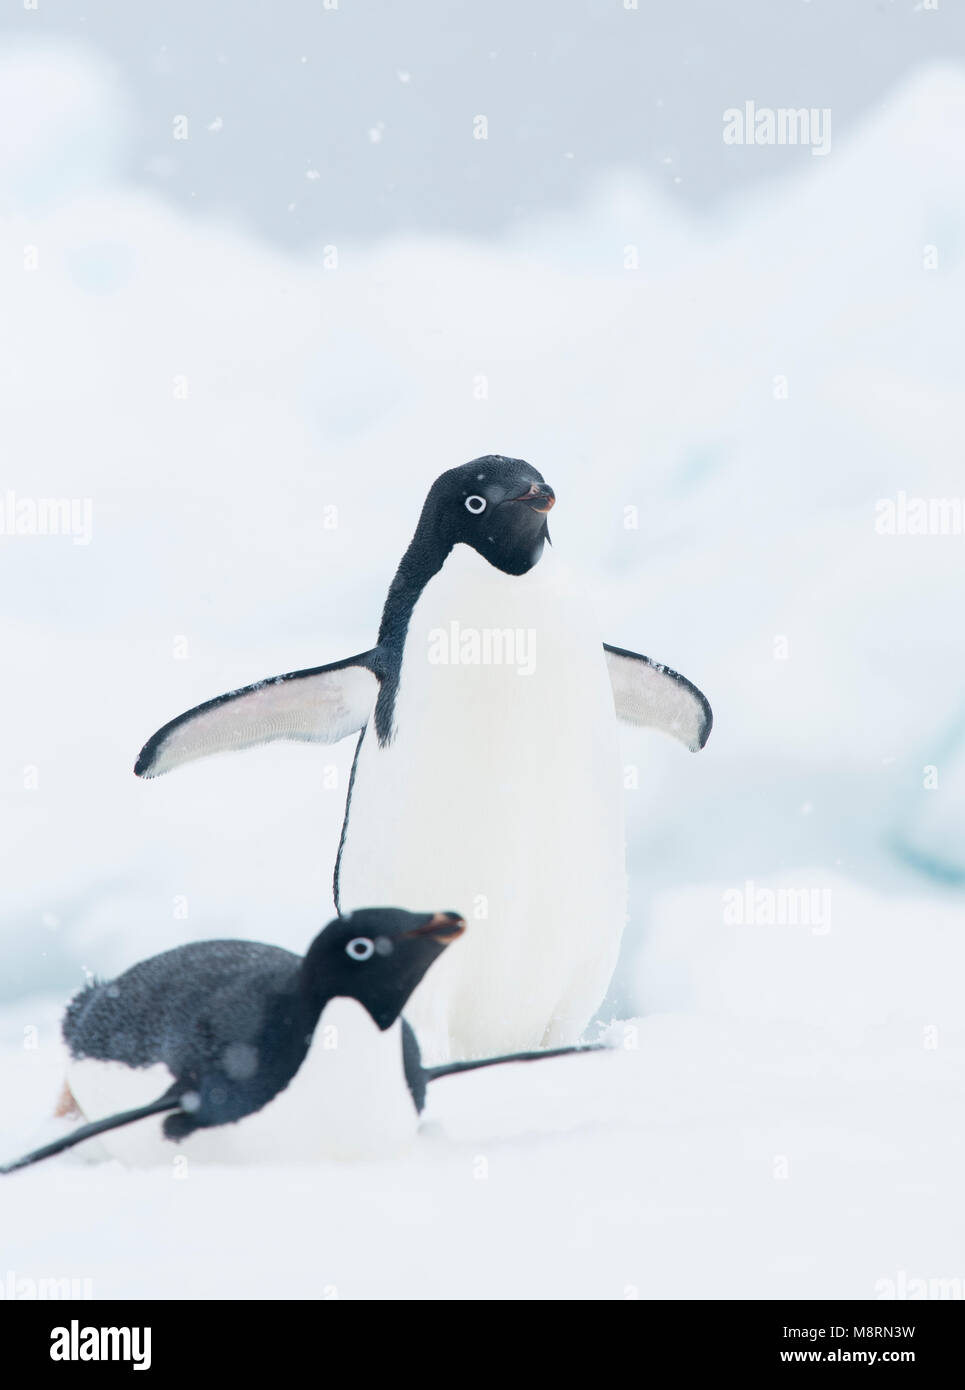 Snow falls on two Adelie penguins on an iceberg in Antarctica. - Stock Image